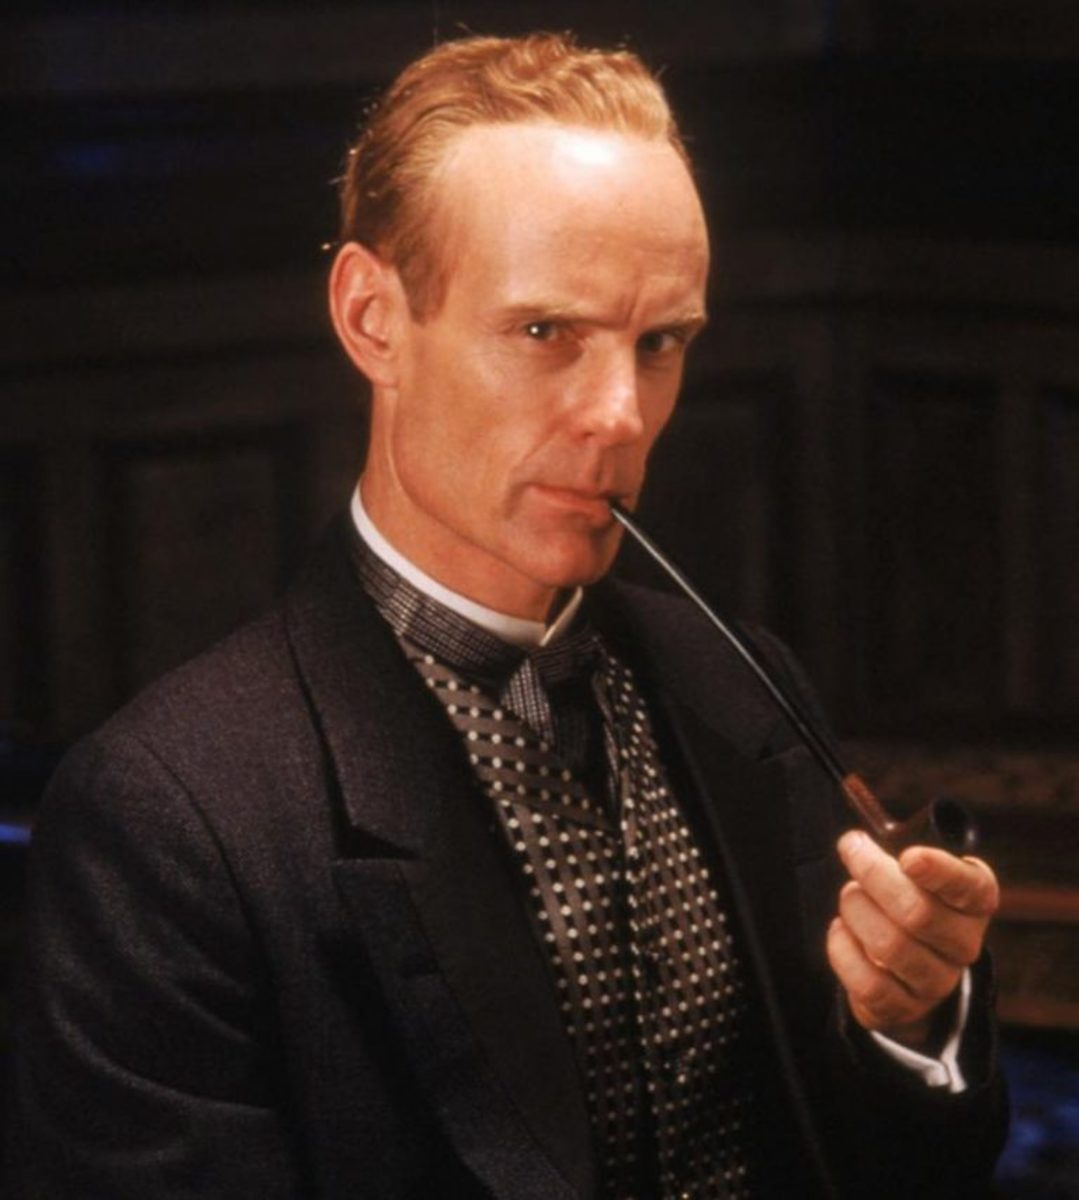 Matt Frewer in the Hallmark Sherlock Holmes television specials.